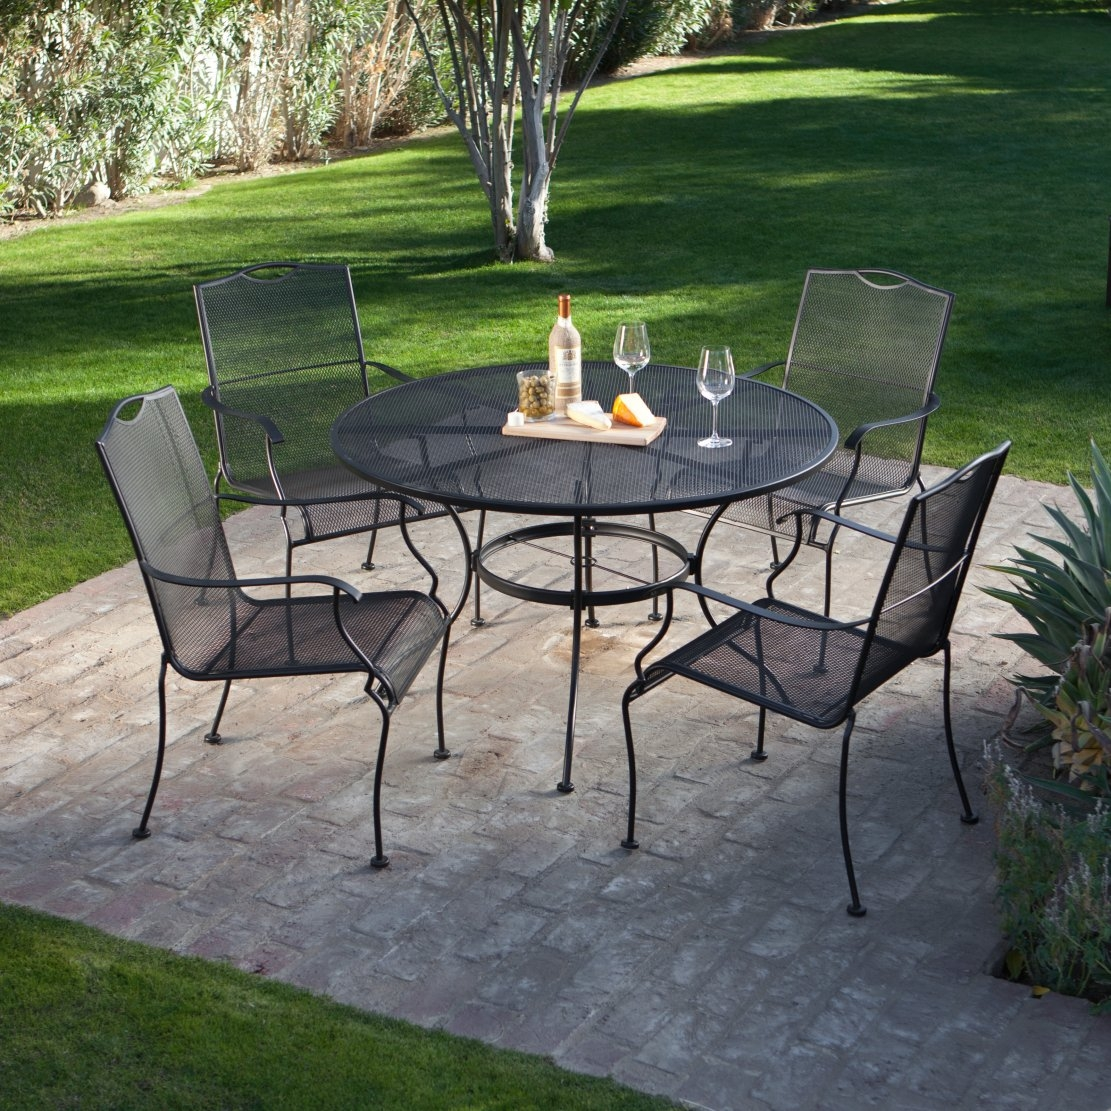 Merveilleux 5 Piece Wrought Iron Patio Furniture Dining Set   Seats 4